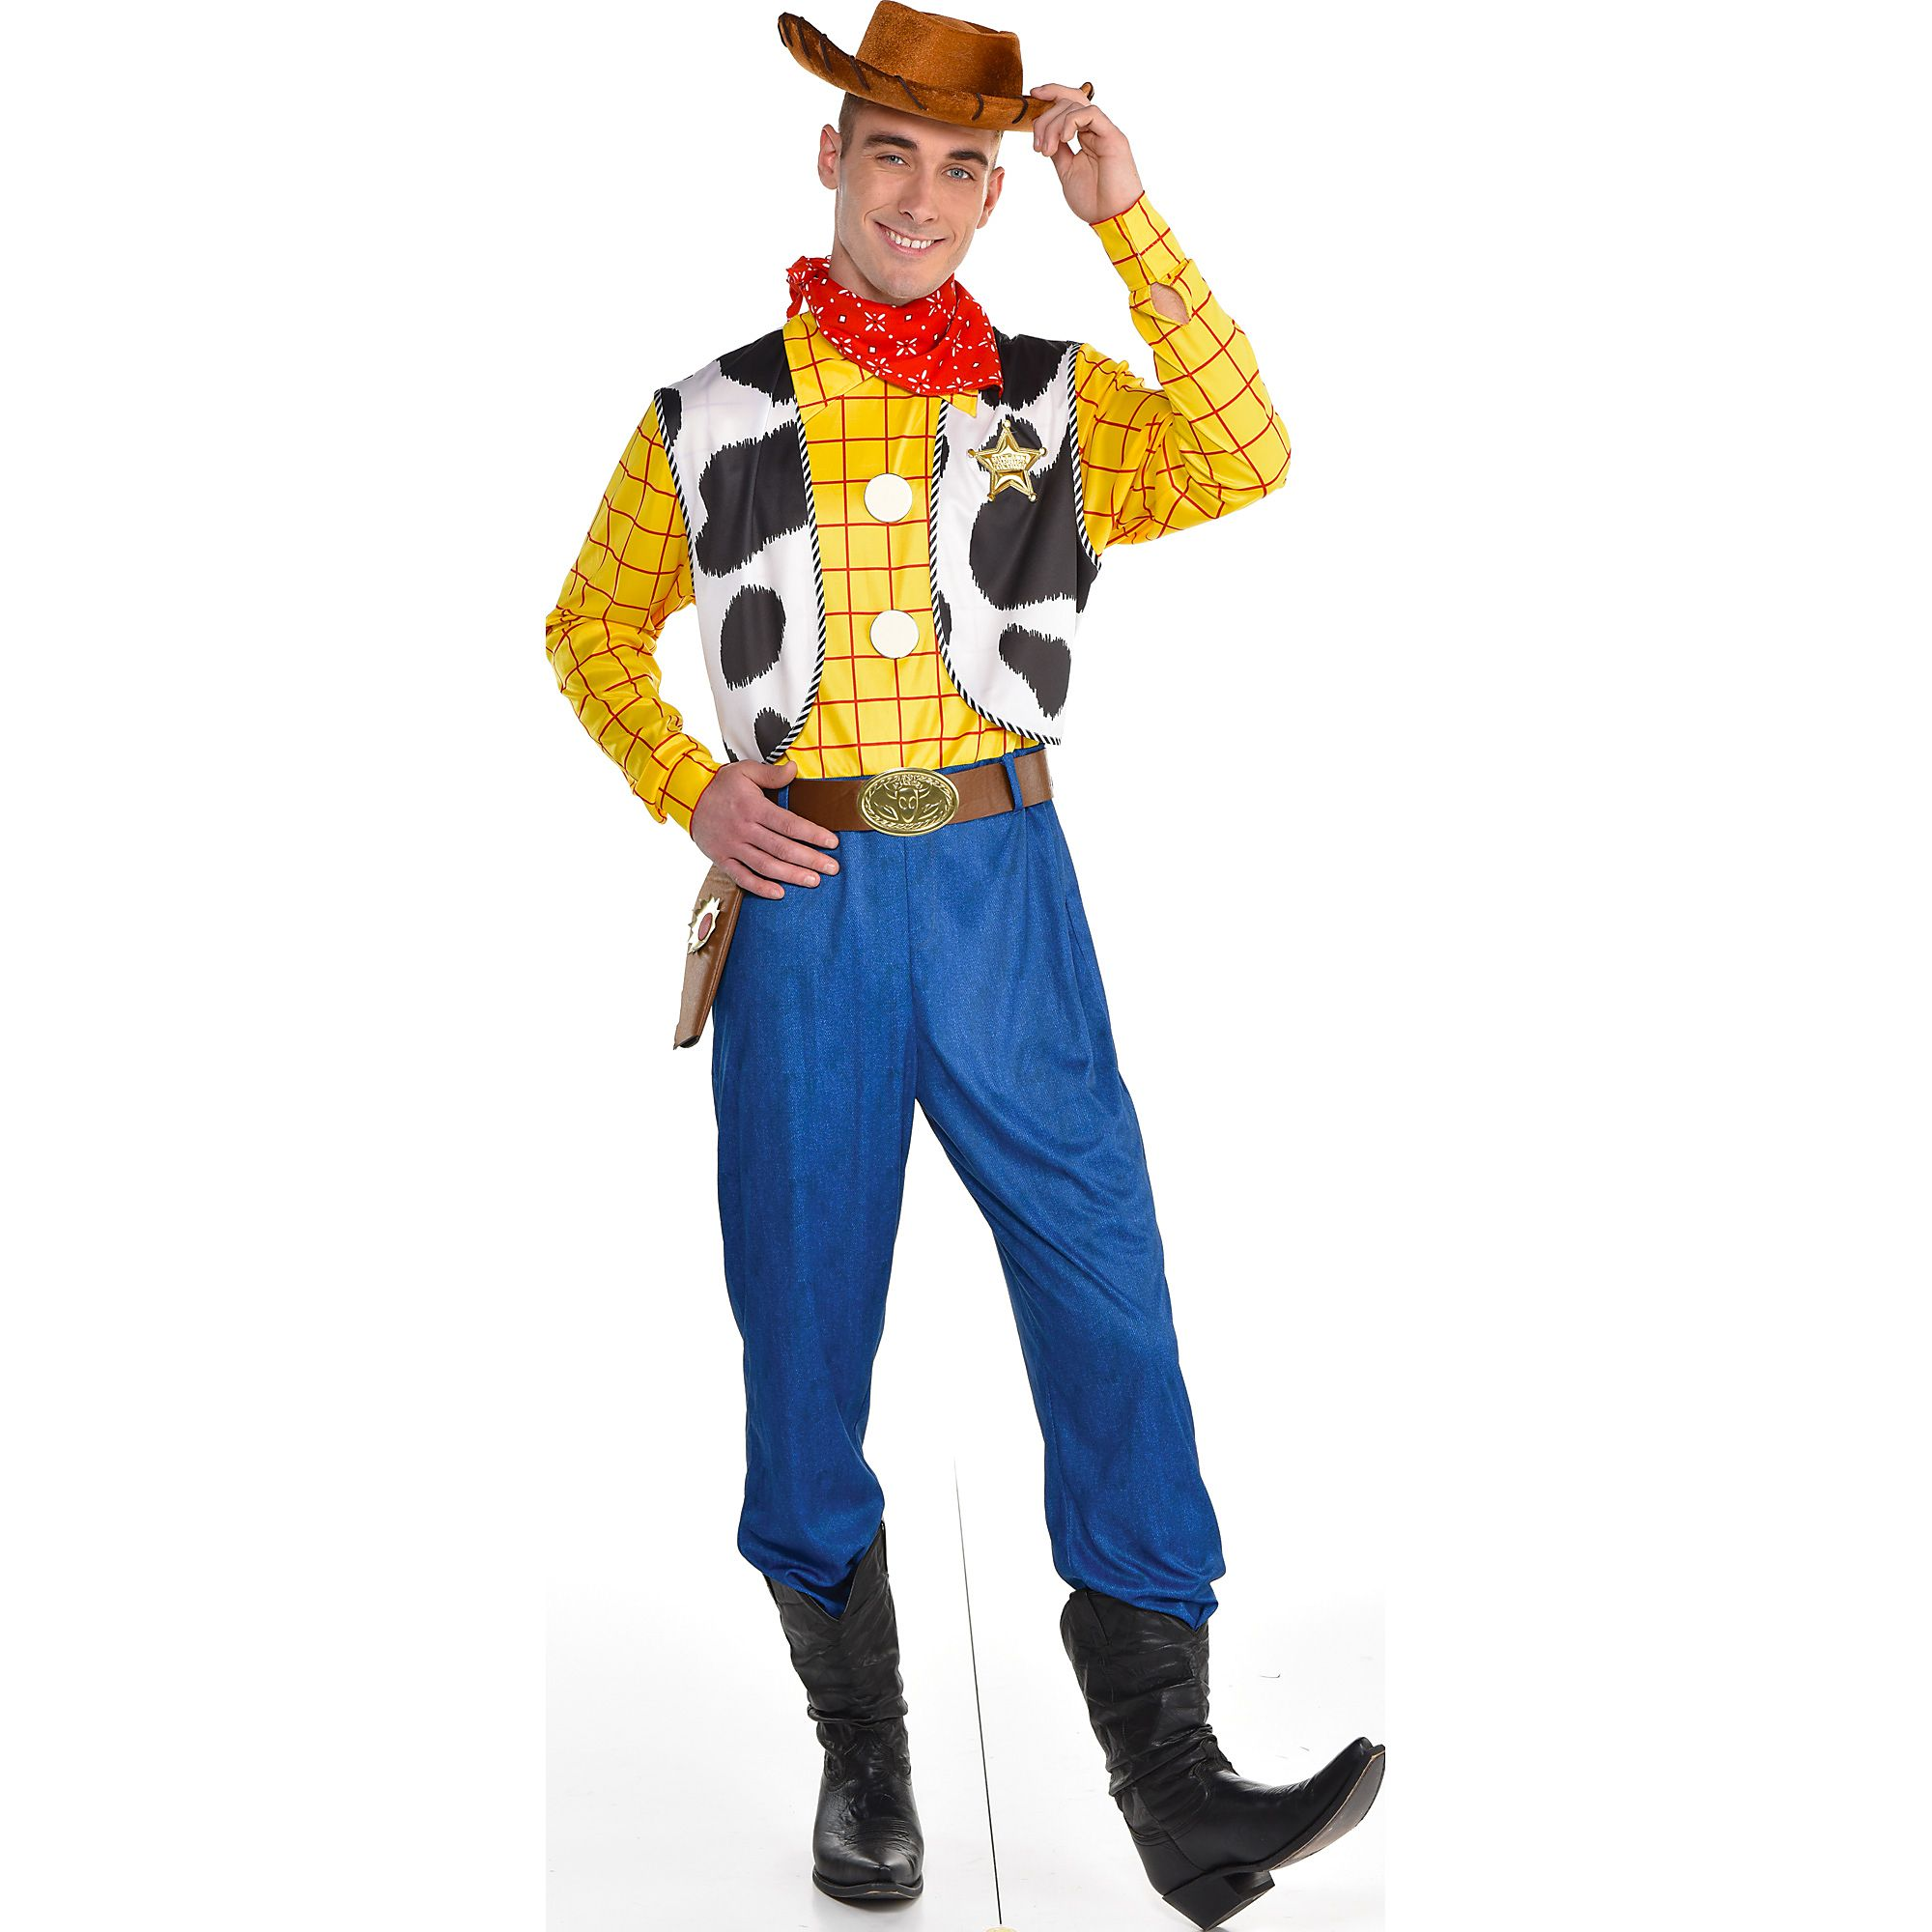 Toy Story 4 Halloween Costumes.Woody Halloween Costume For Men Toy Story 4 Standard With